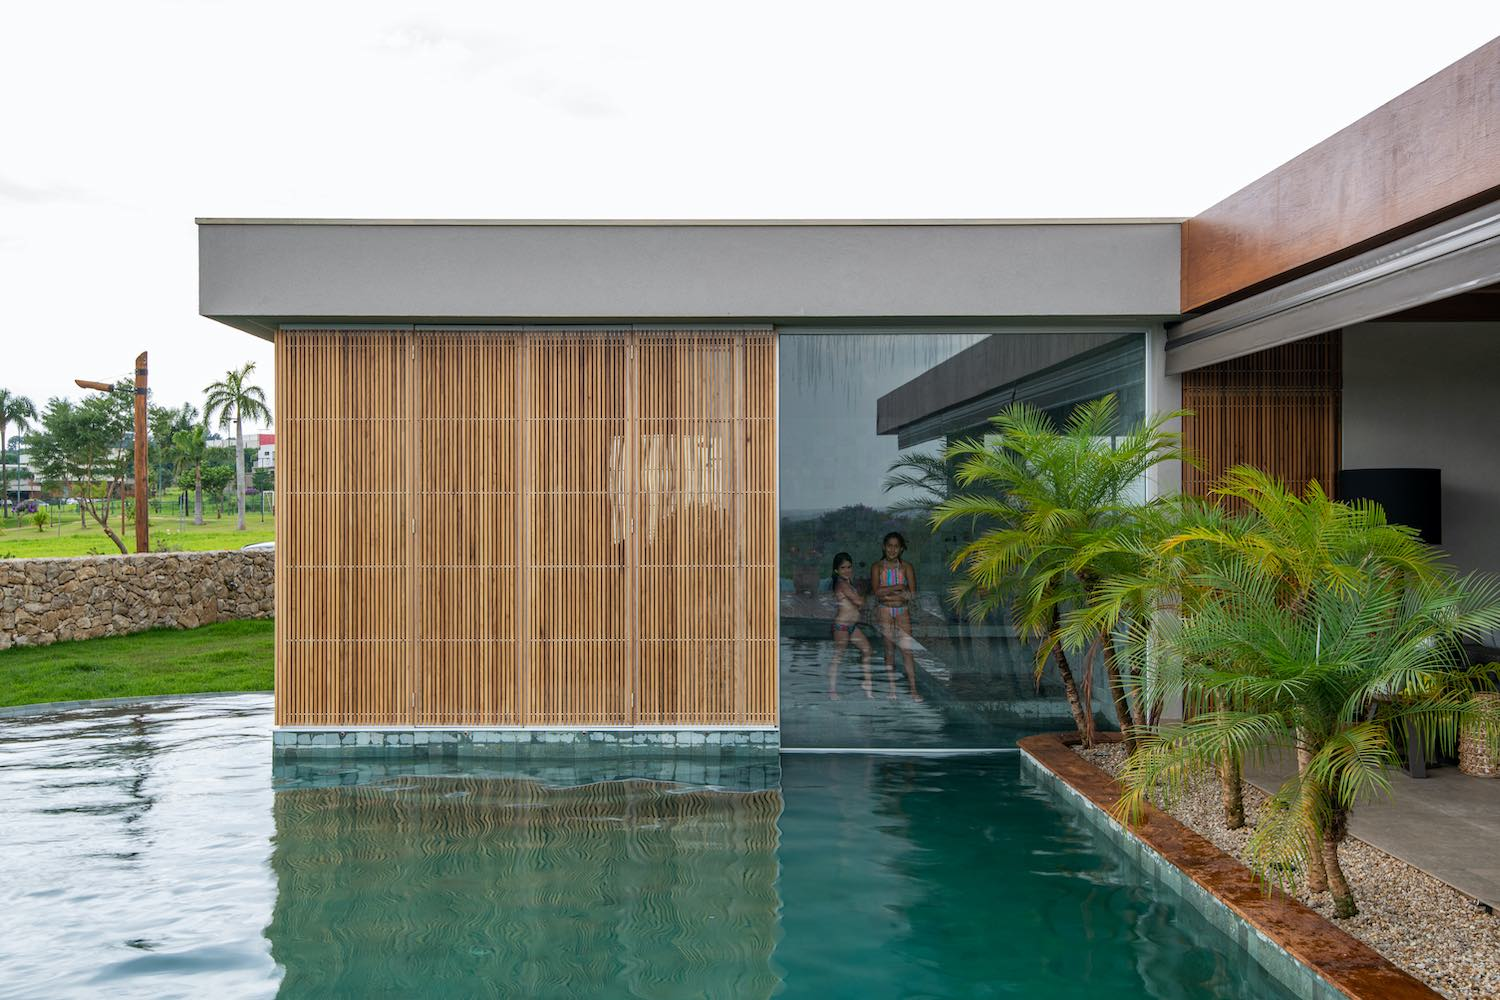 LLP House in São Carlos, Brazil designed by lb+mr